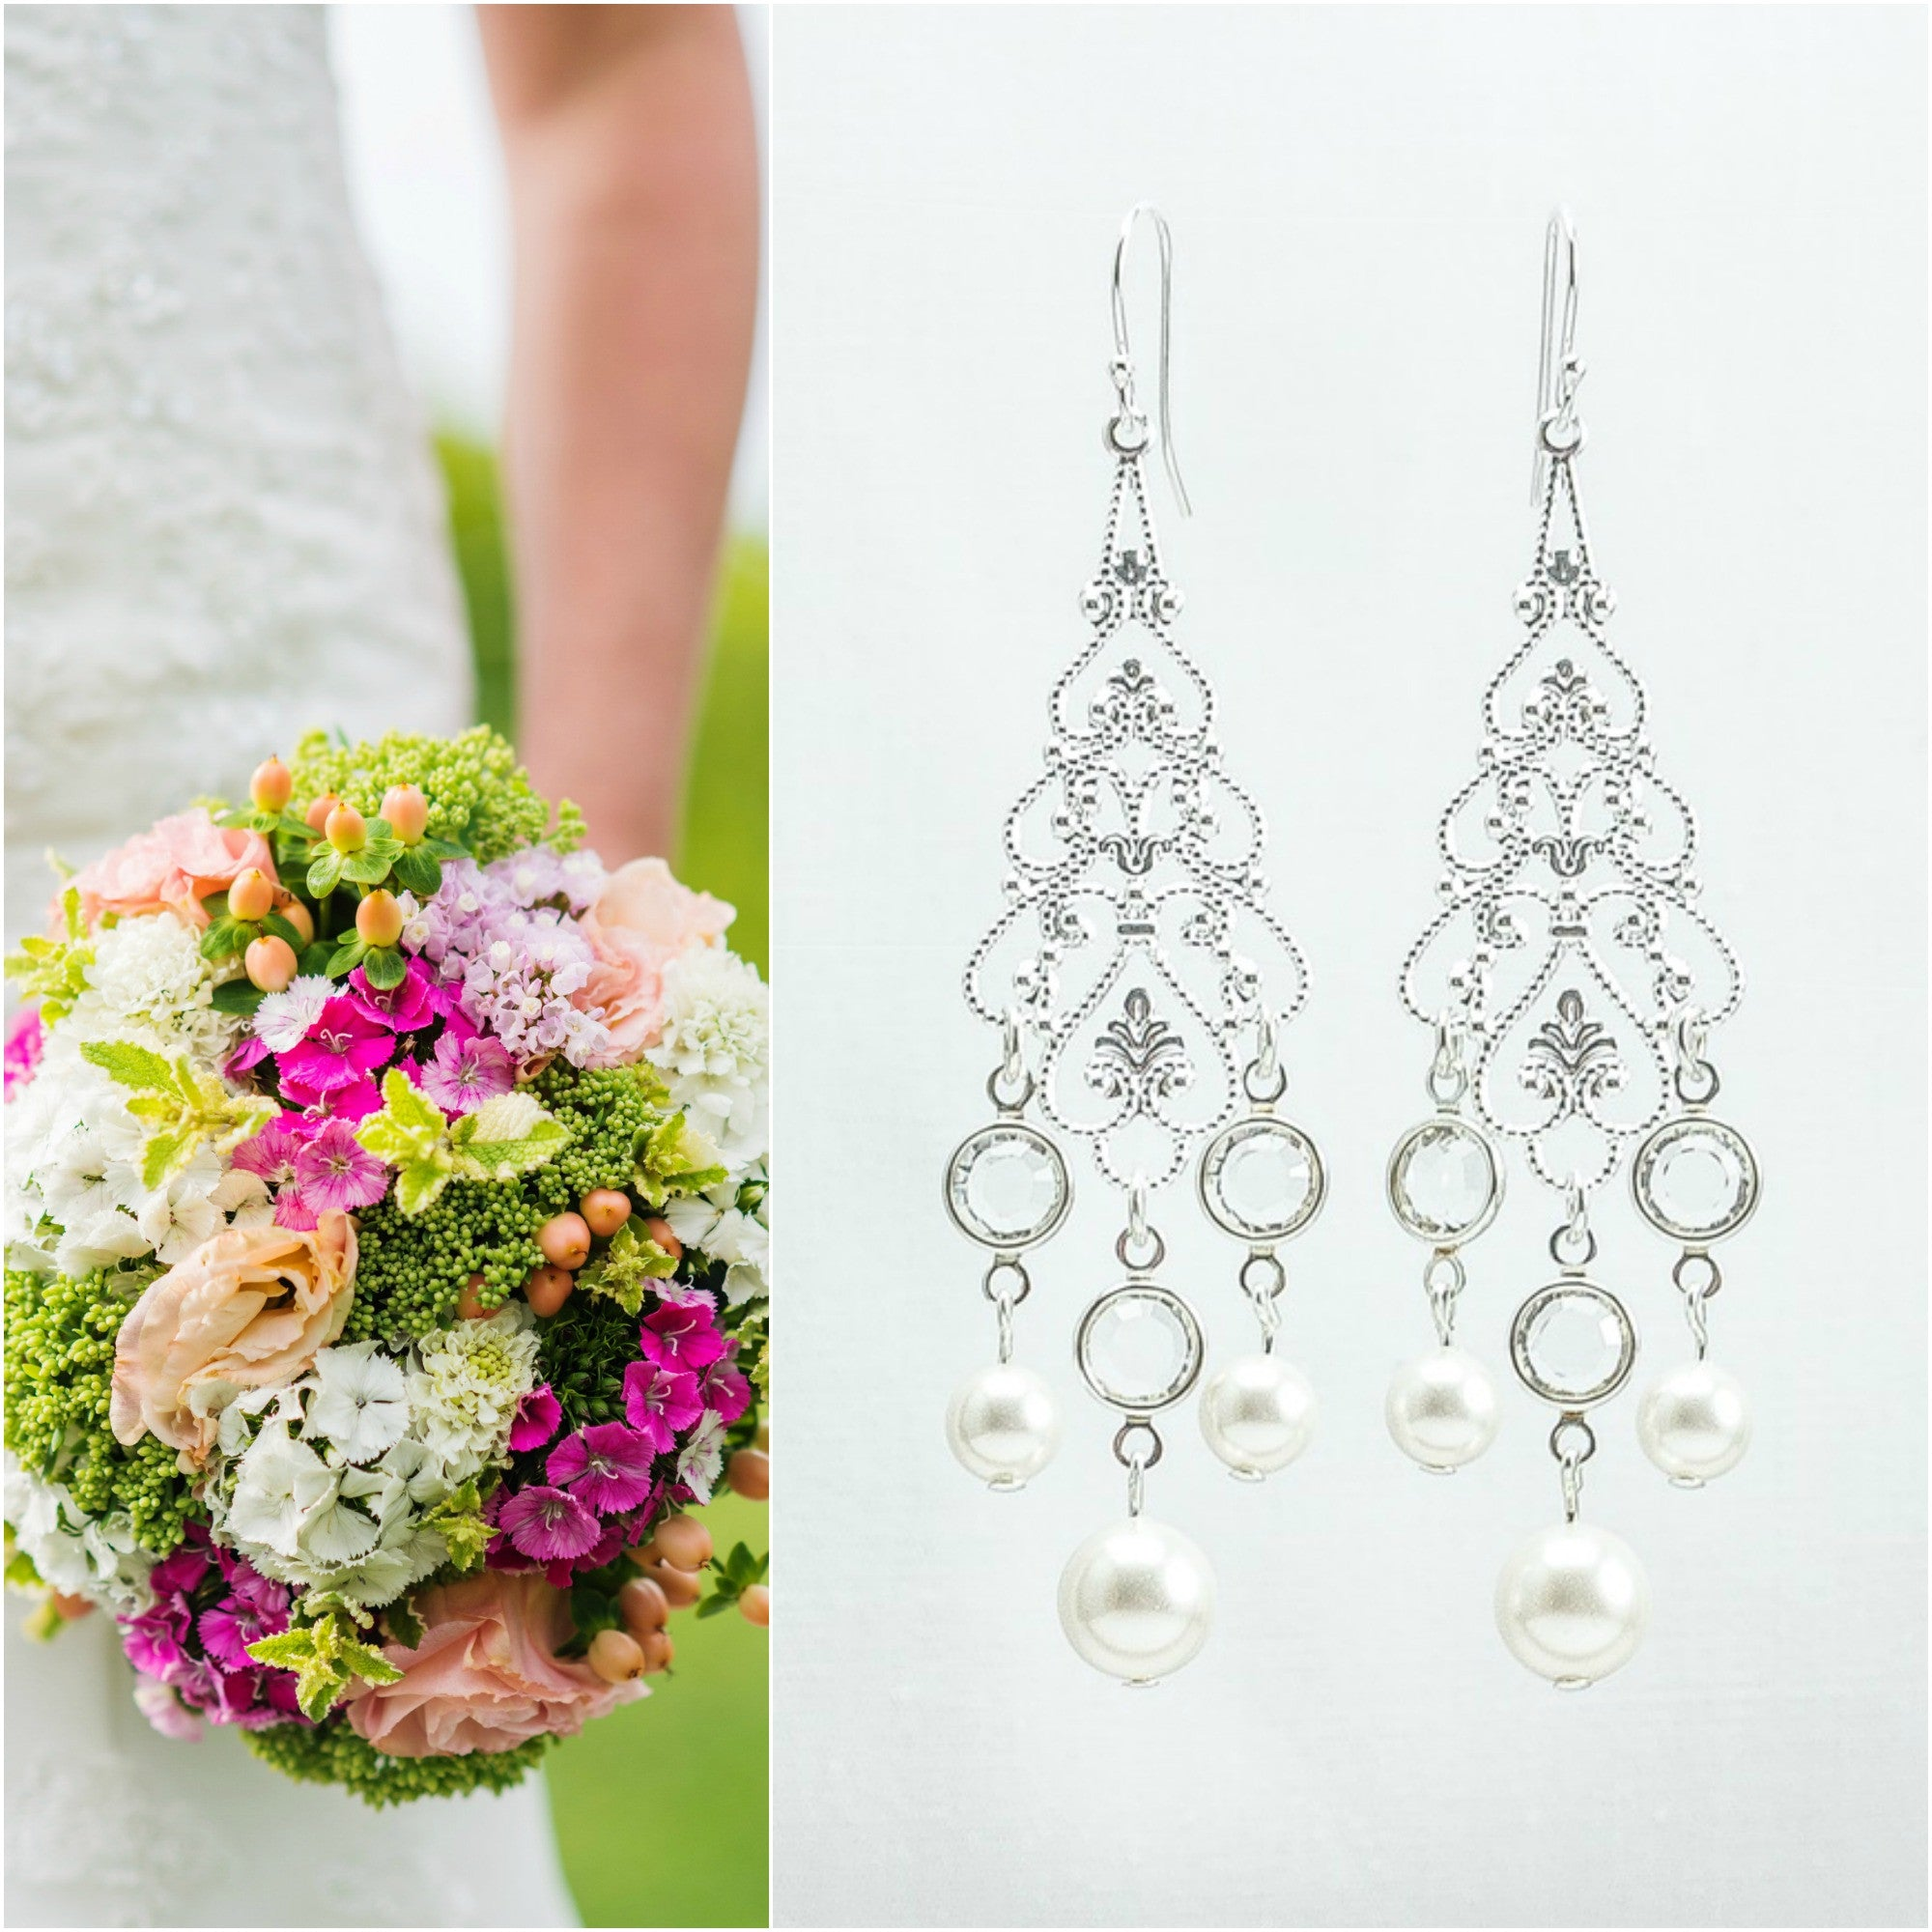 Chandelier Crystal Earrings // Big Wedding Earrings